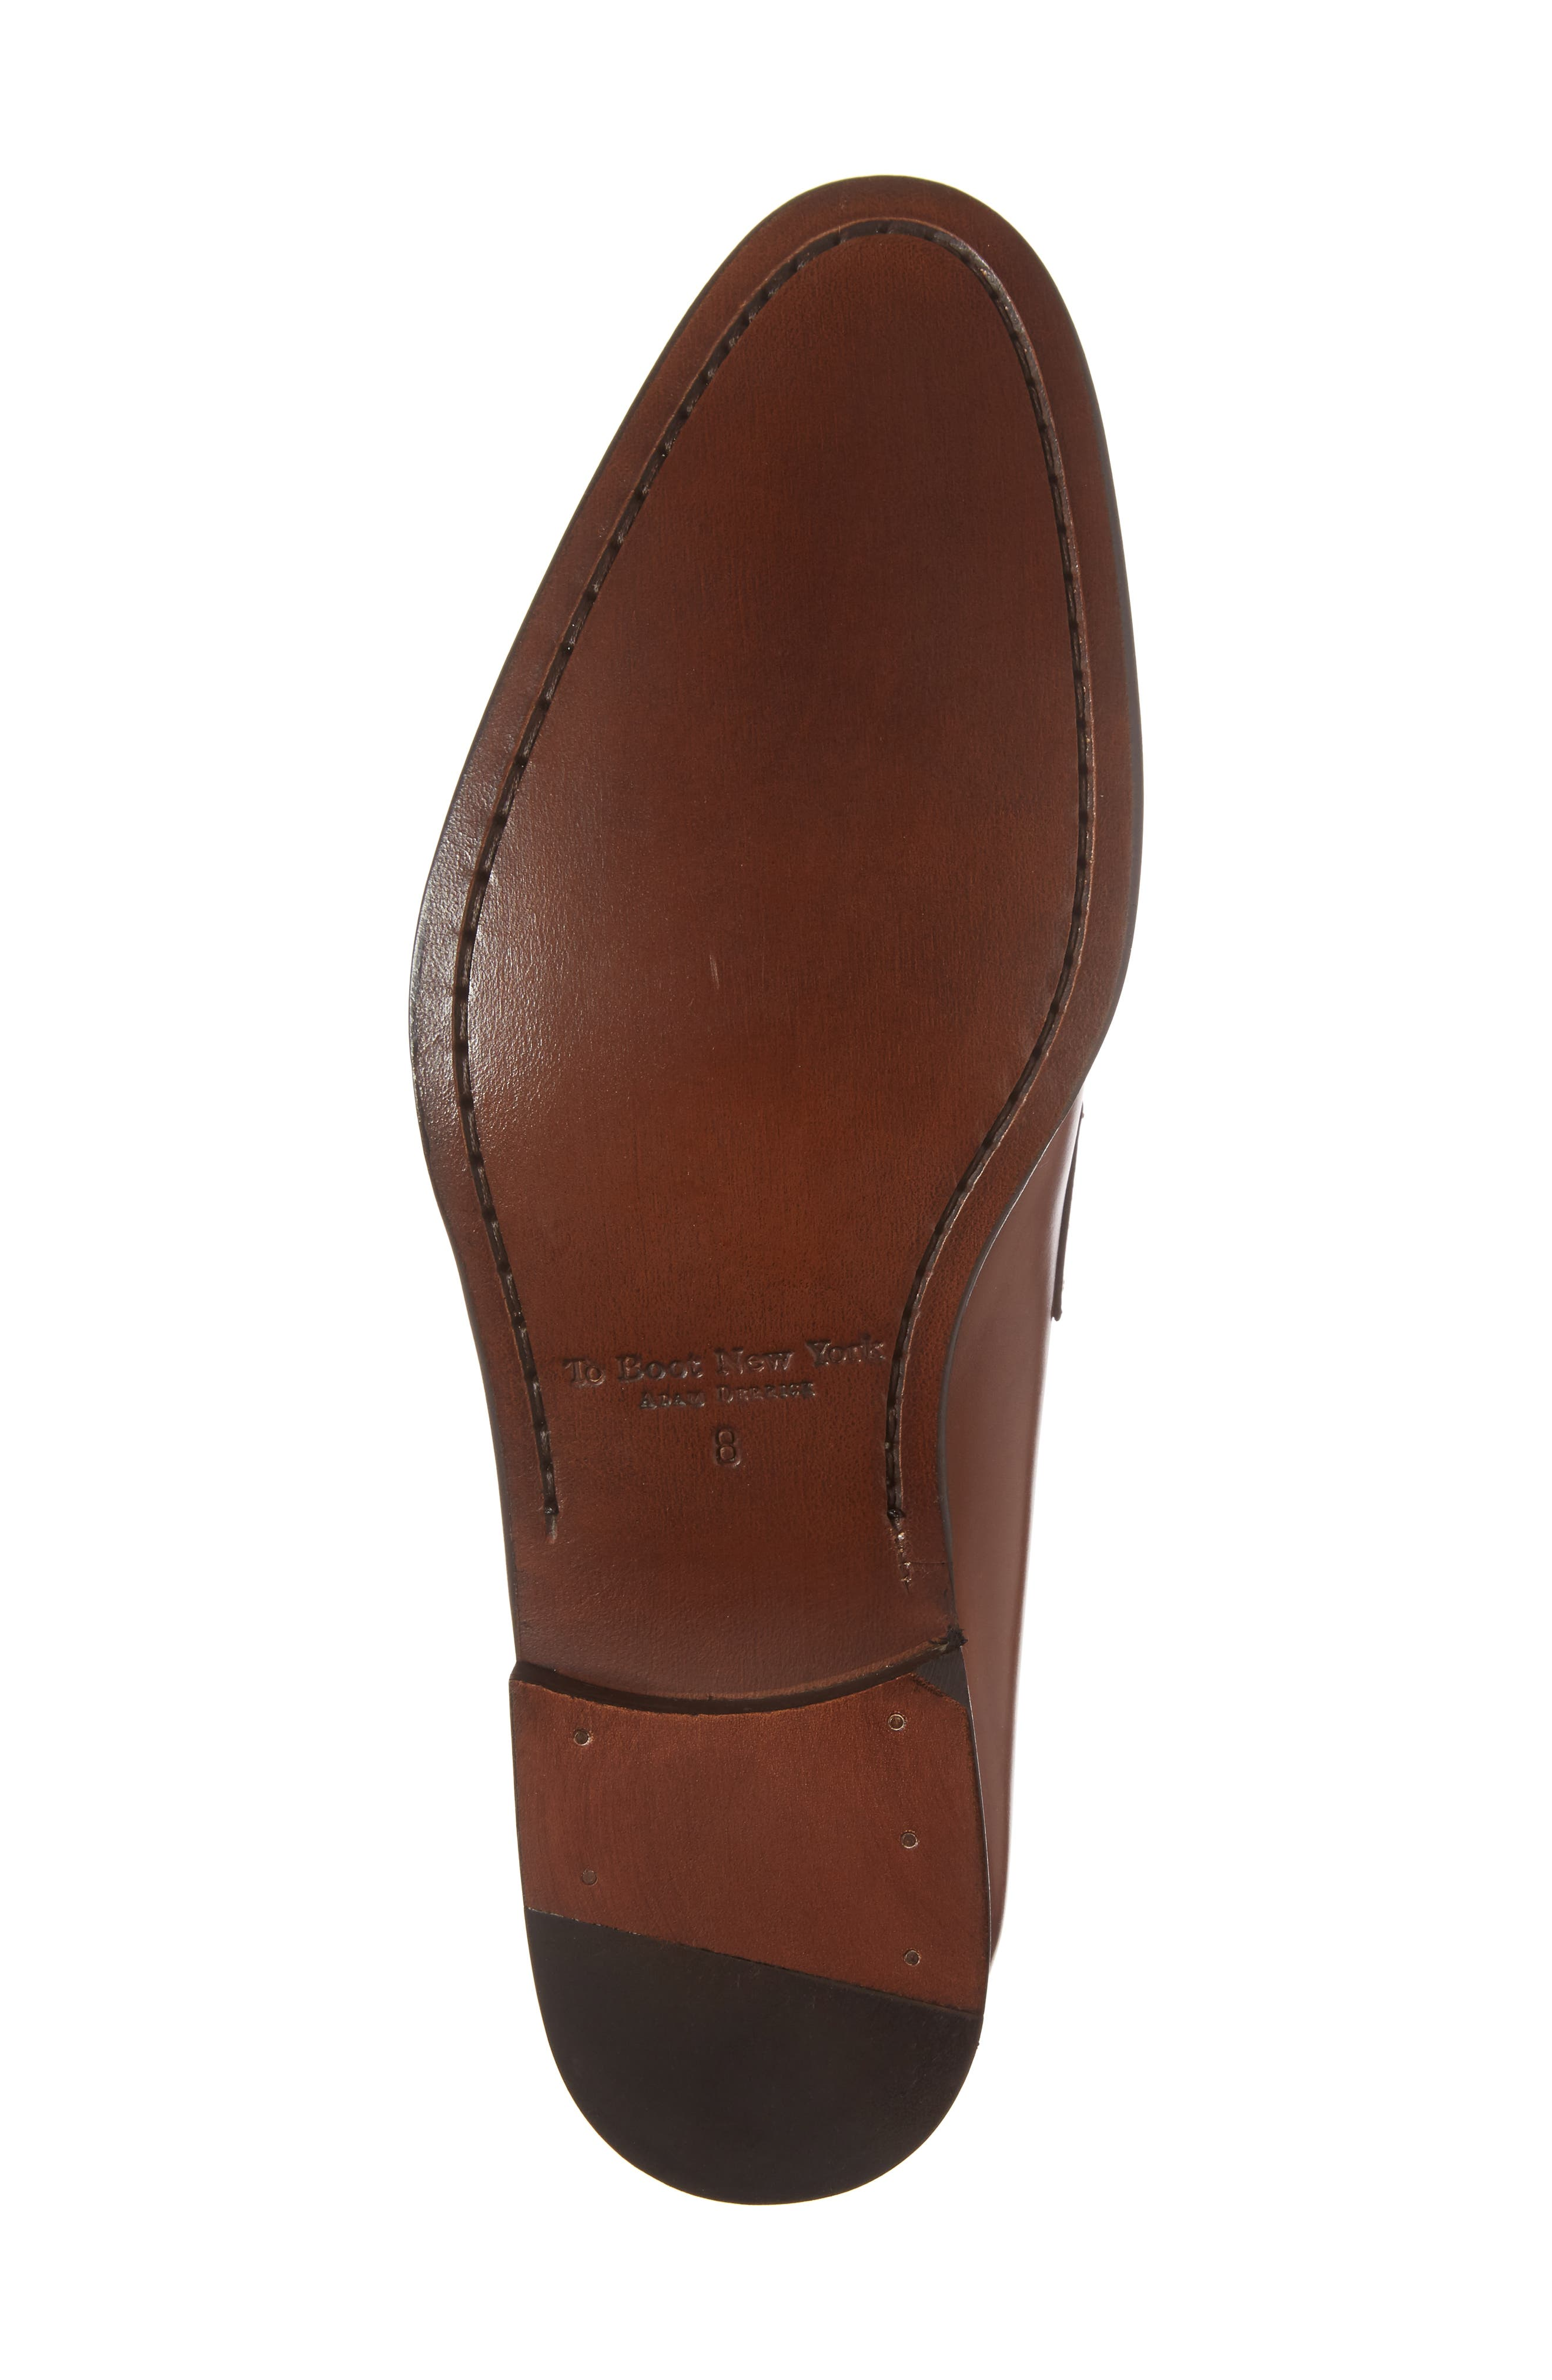 Francis Penny Loafer,                             Alternate thumbnail 6, color,                             Brown Leather